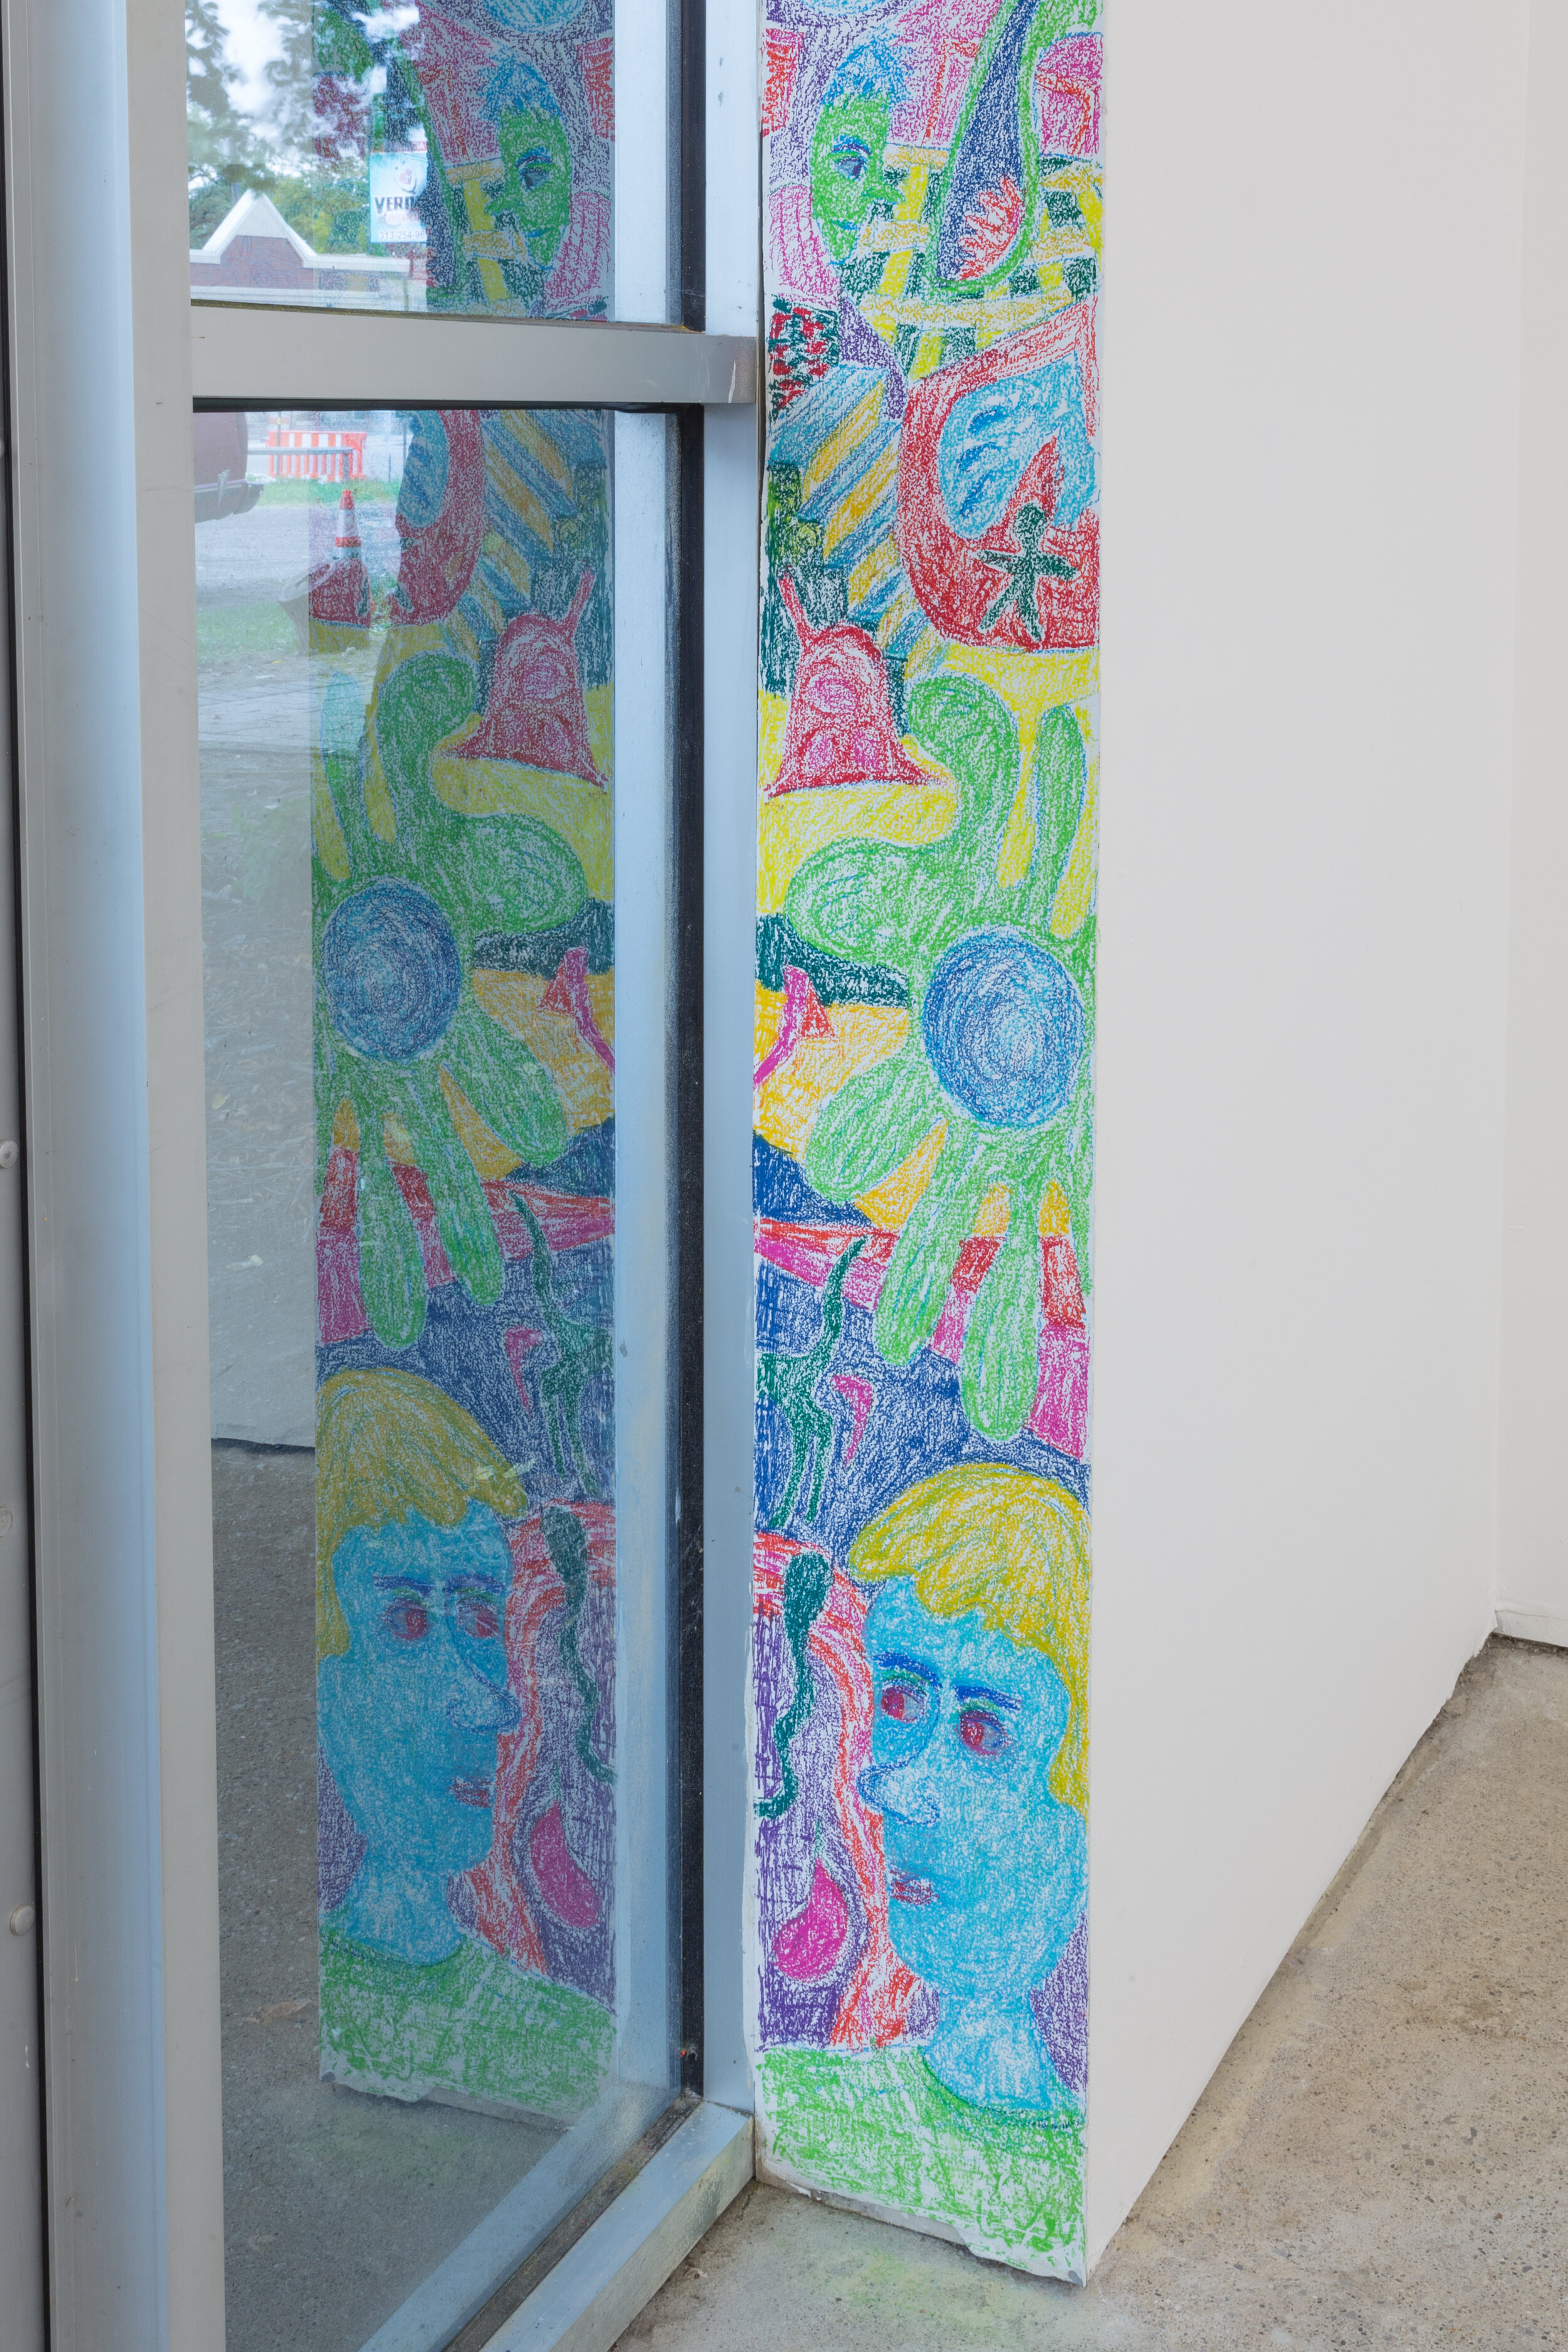 Wall drawing by Max Brand, installation view